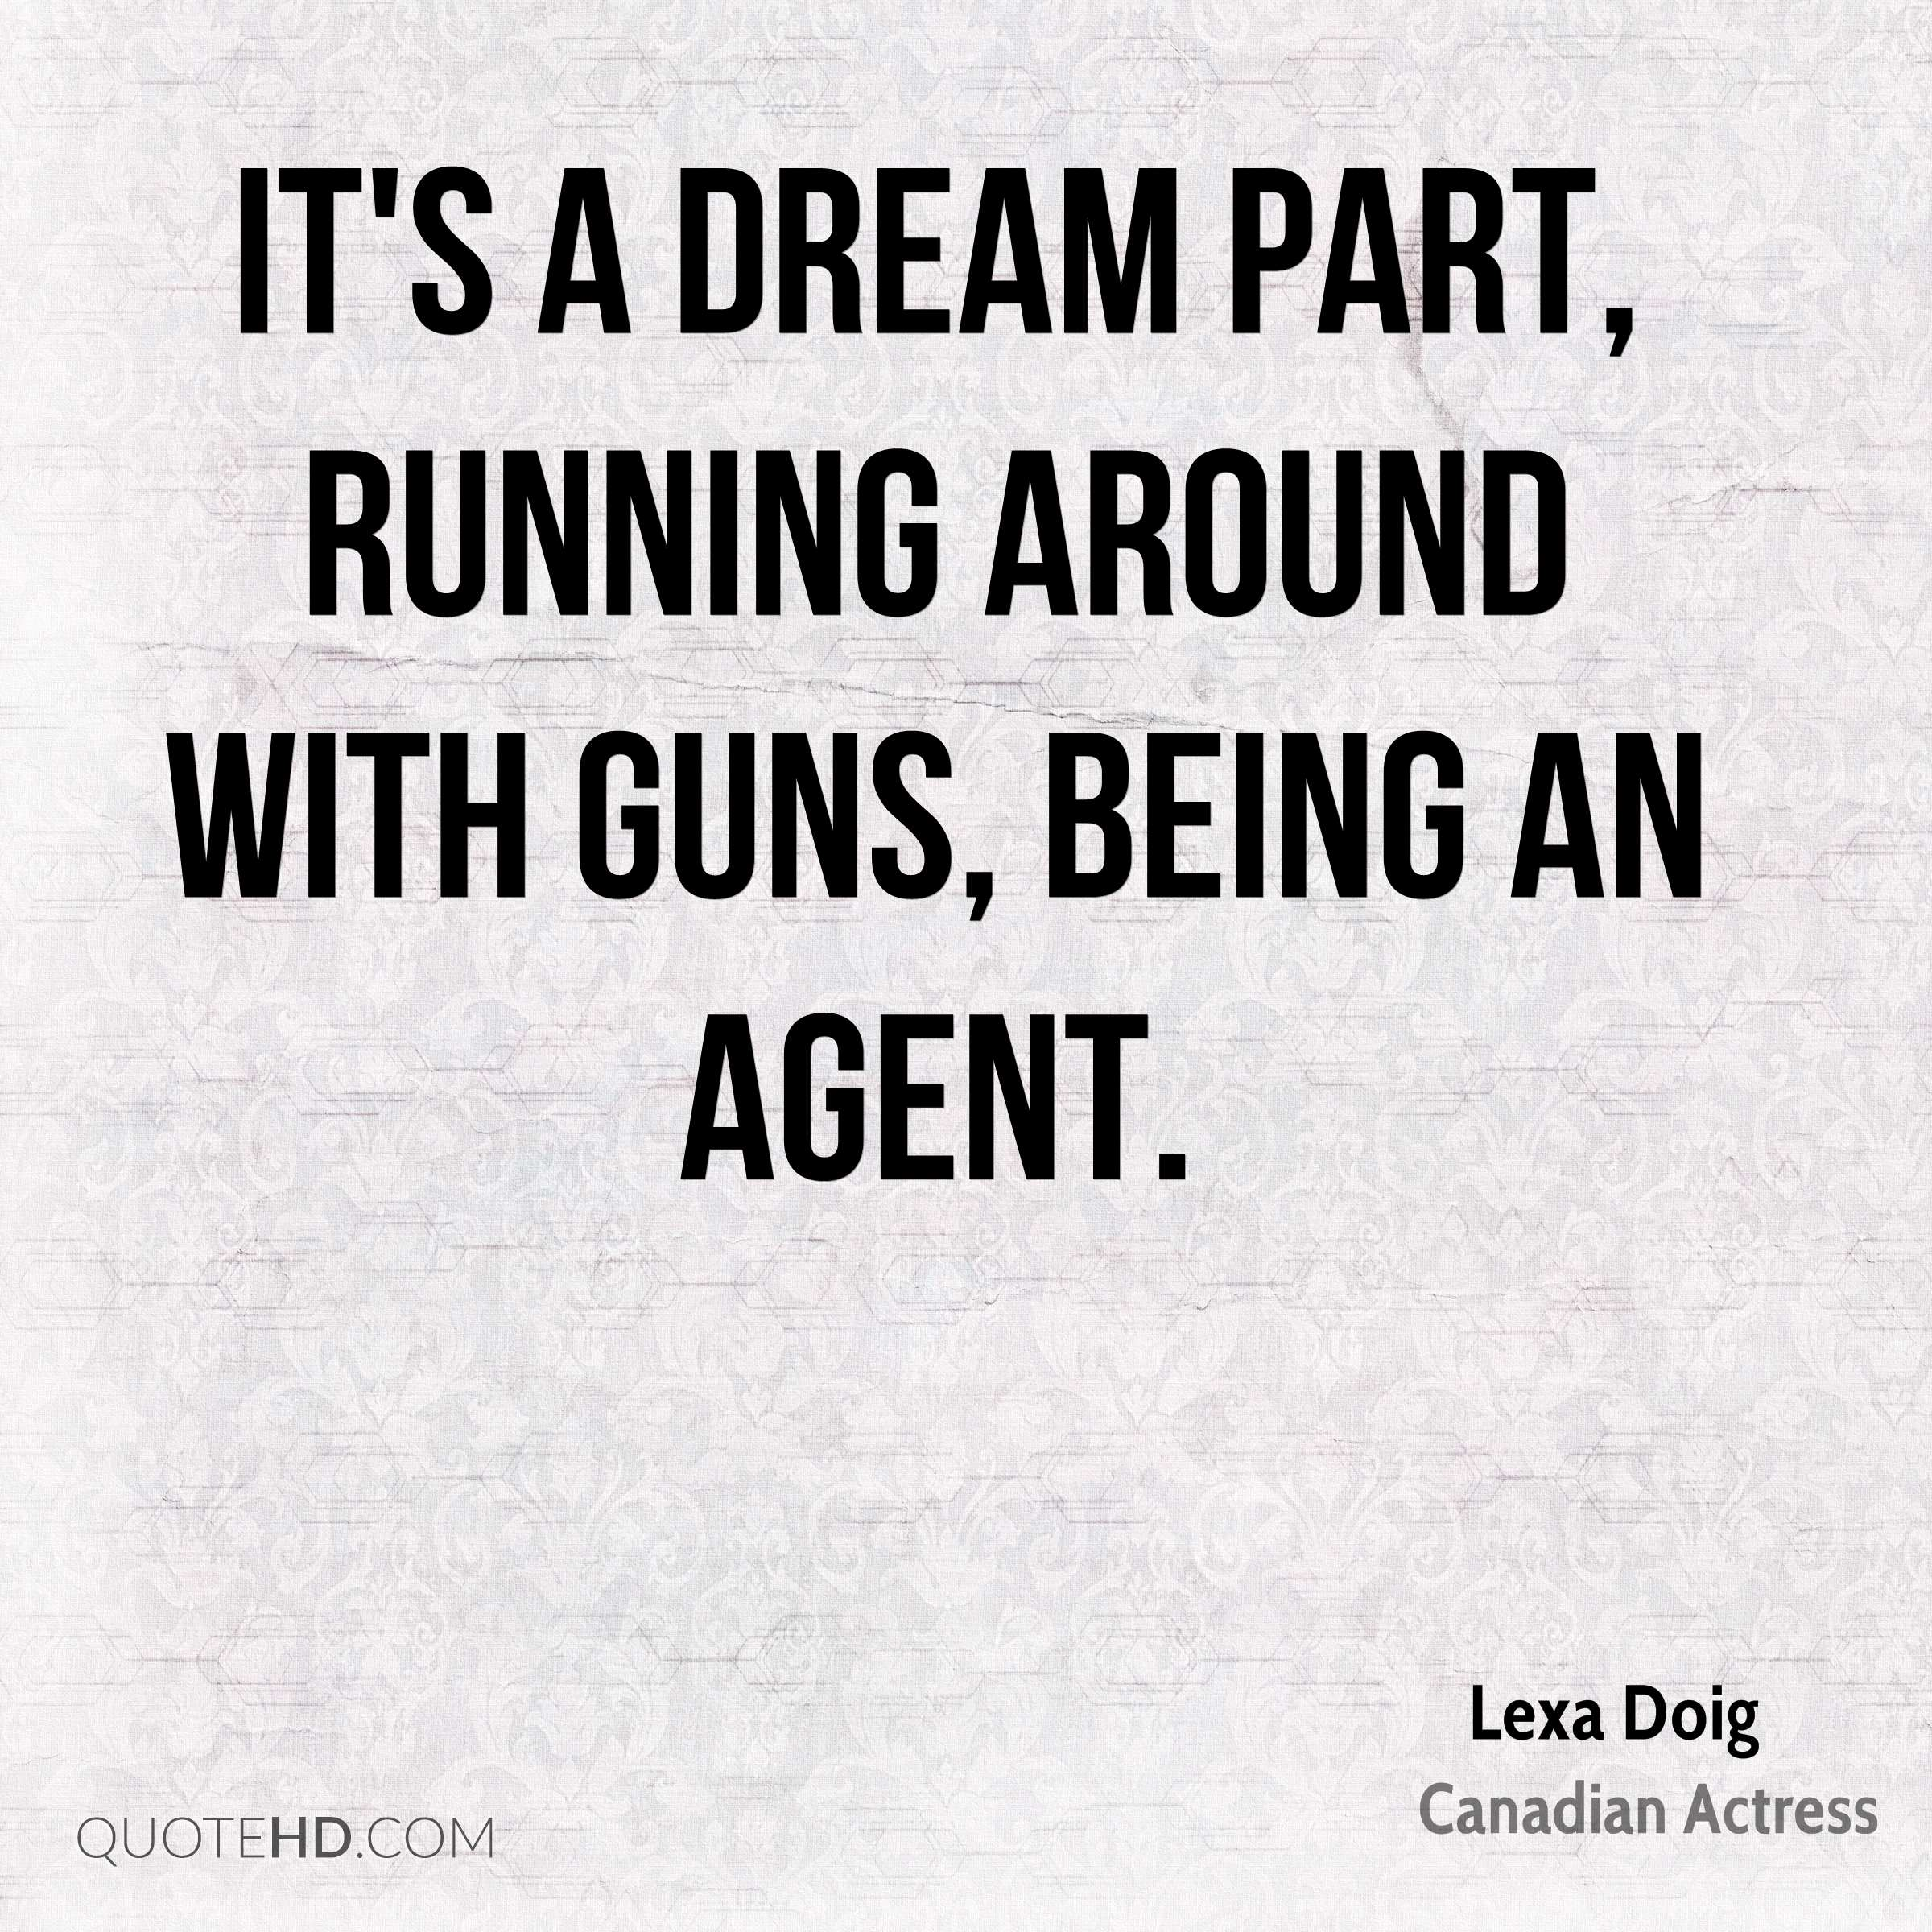 It's a dream part, running around with guns, being an agent.